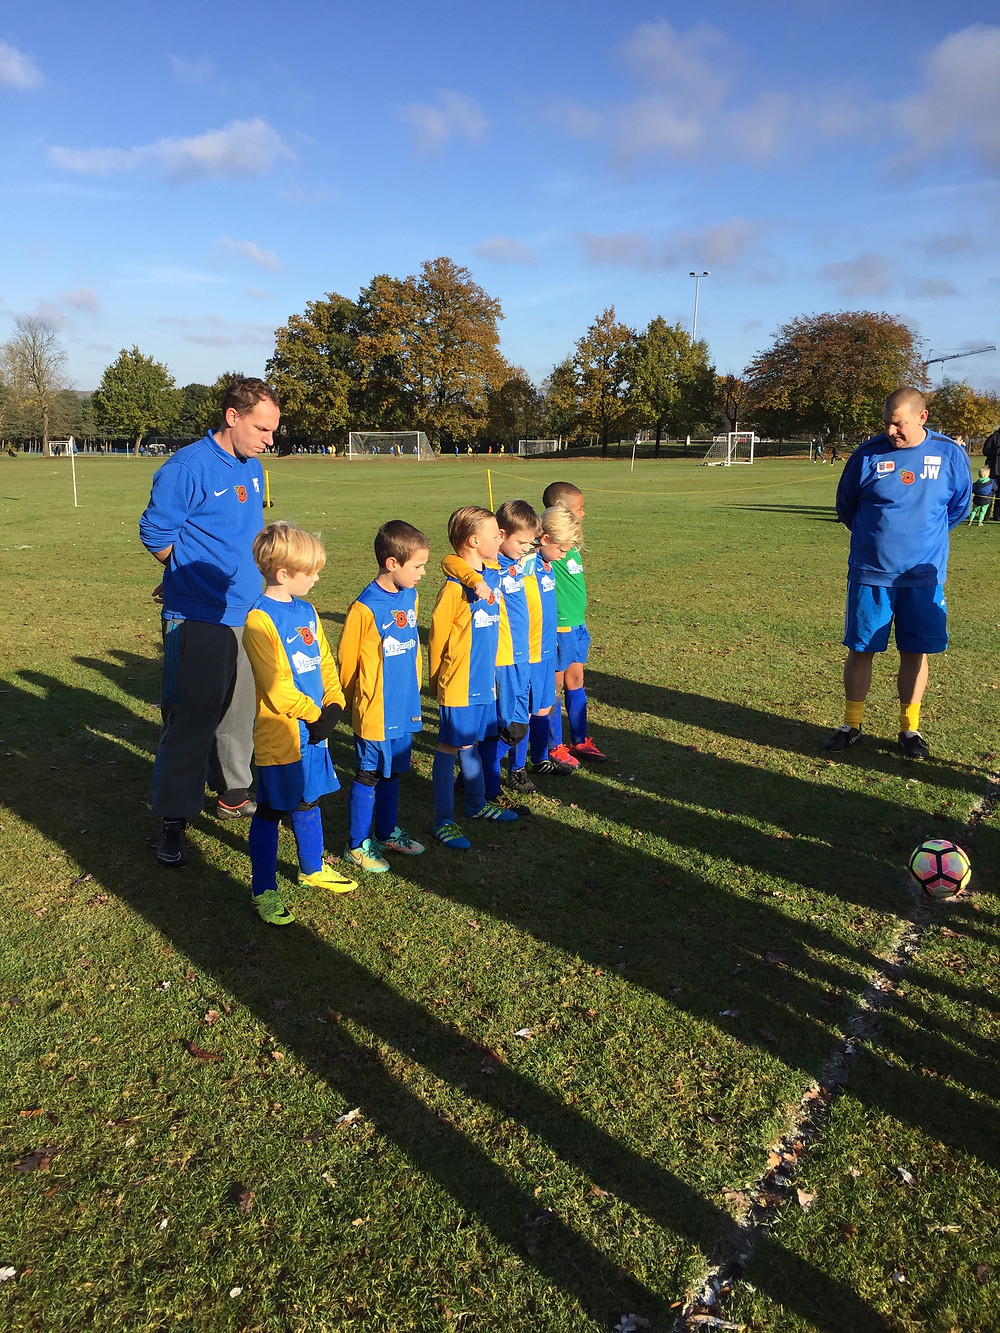 Some of our teams paying their respect during the minute silence before Kick Off today,